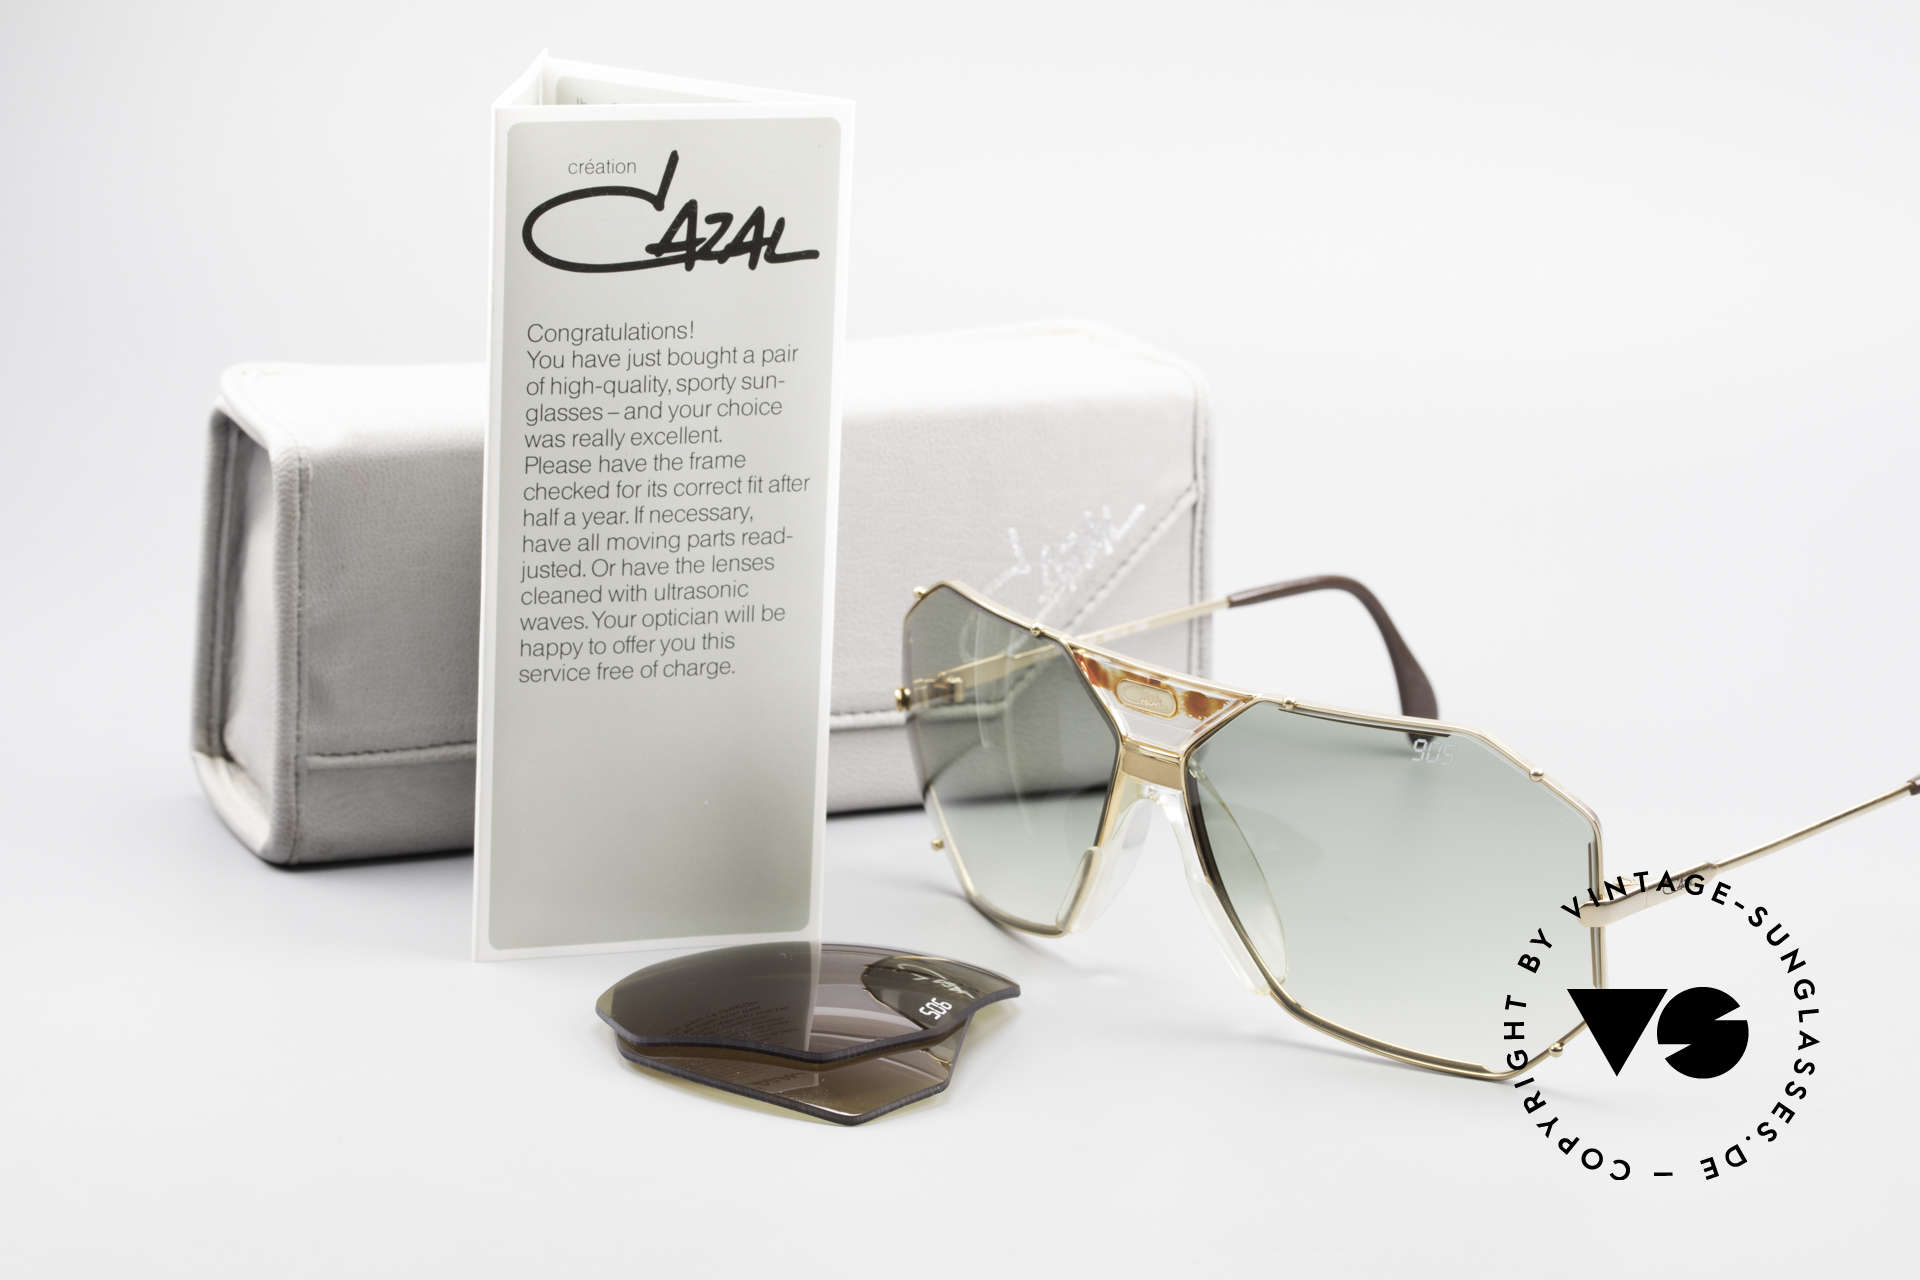 Cazal 905 Gwen Stefani Sunglasses 80's, the rare old W.GERMANY ORIGINAL (no re-issue!), Made for Men